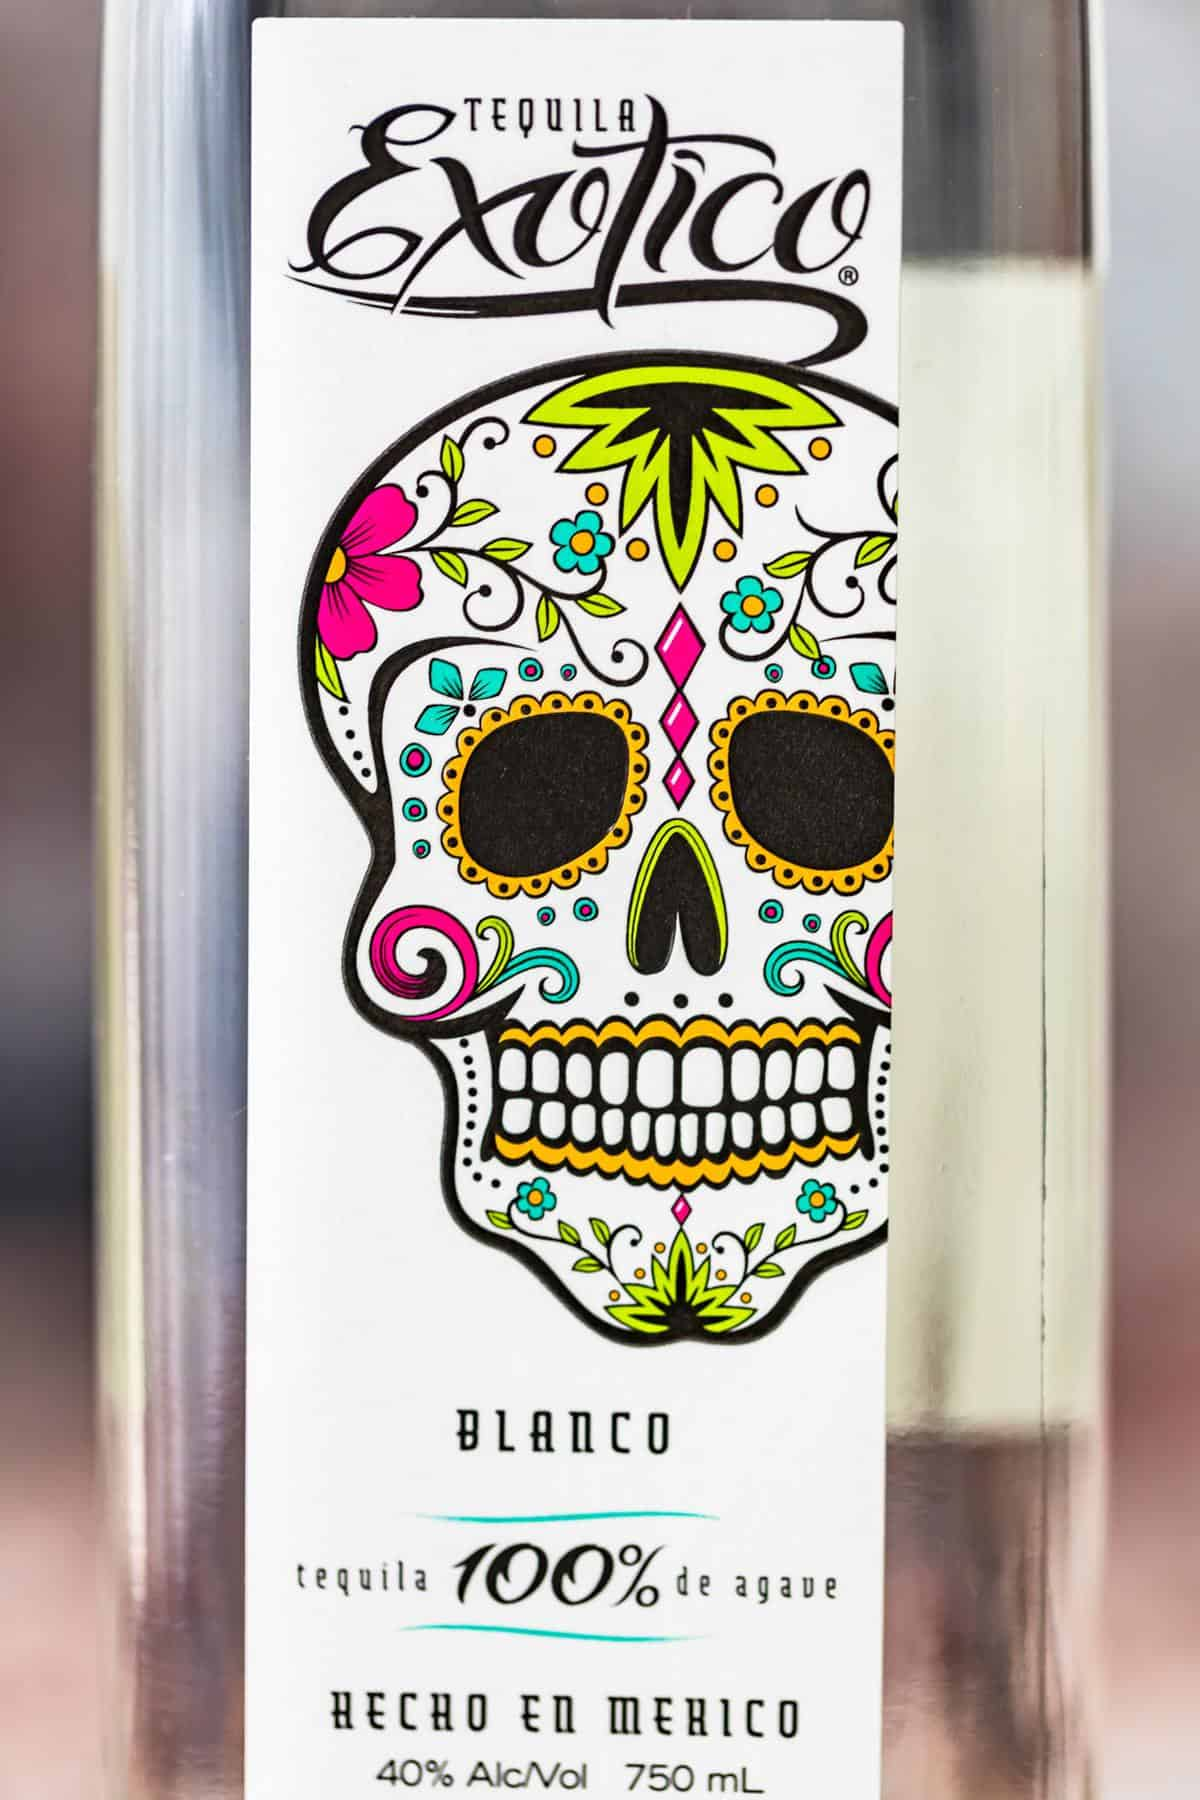 Close up view of tequila label